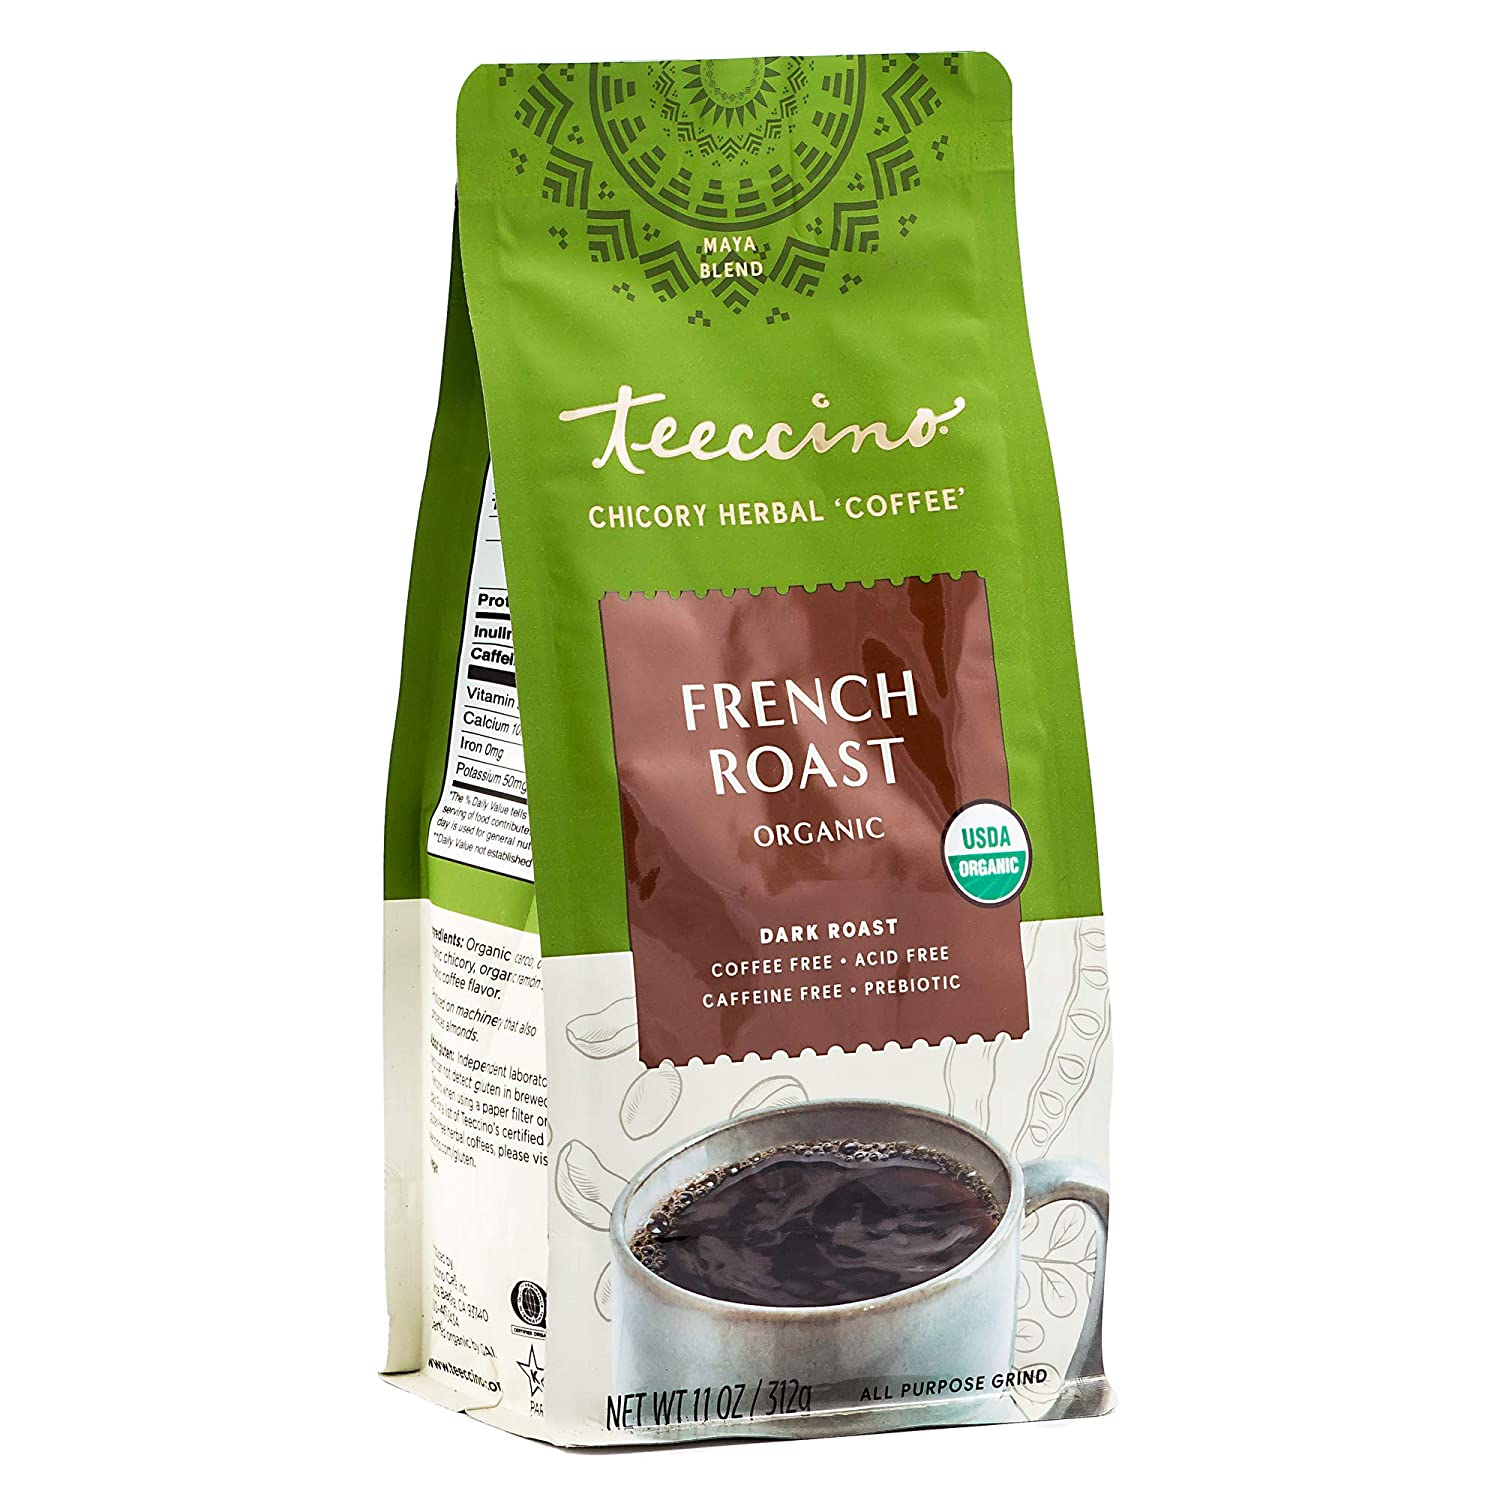 Teeccino Chicory Coffee Alternative – Organic French Roast – Herbal Coffee | Ground Coffee Substitute | Prebiotic | Caffeine Free | Acid Free, 11 Ounce